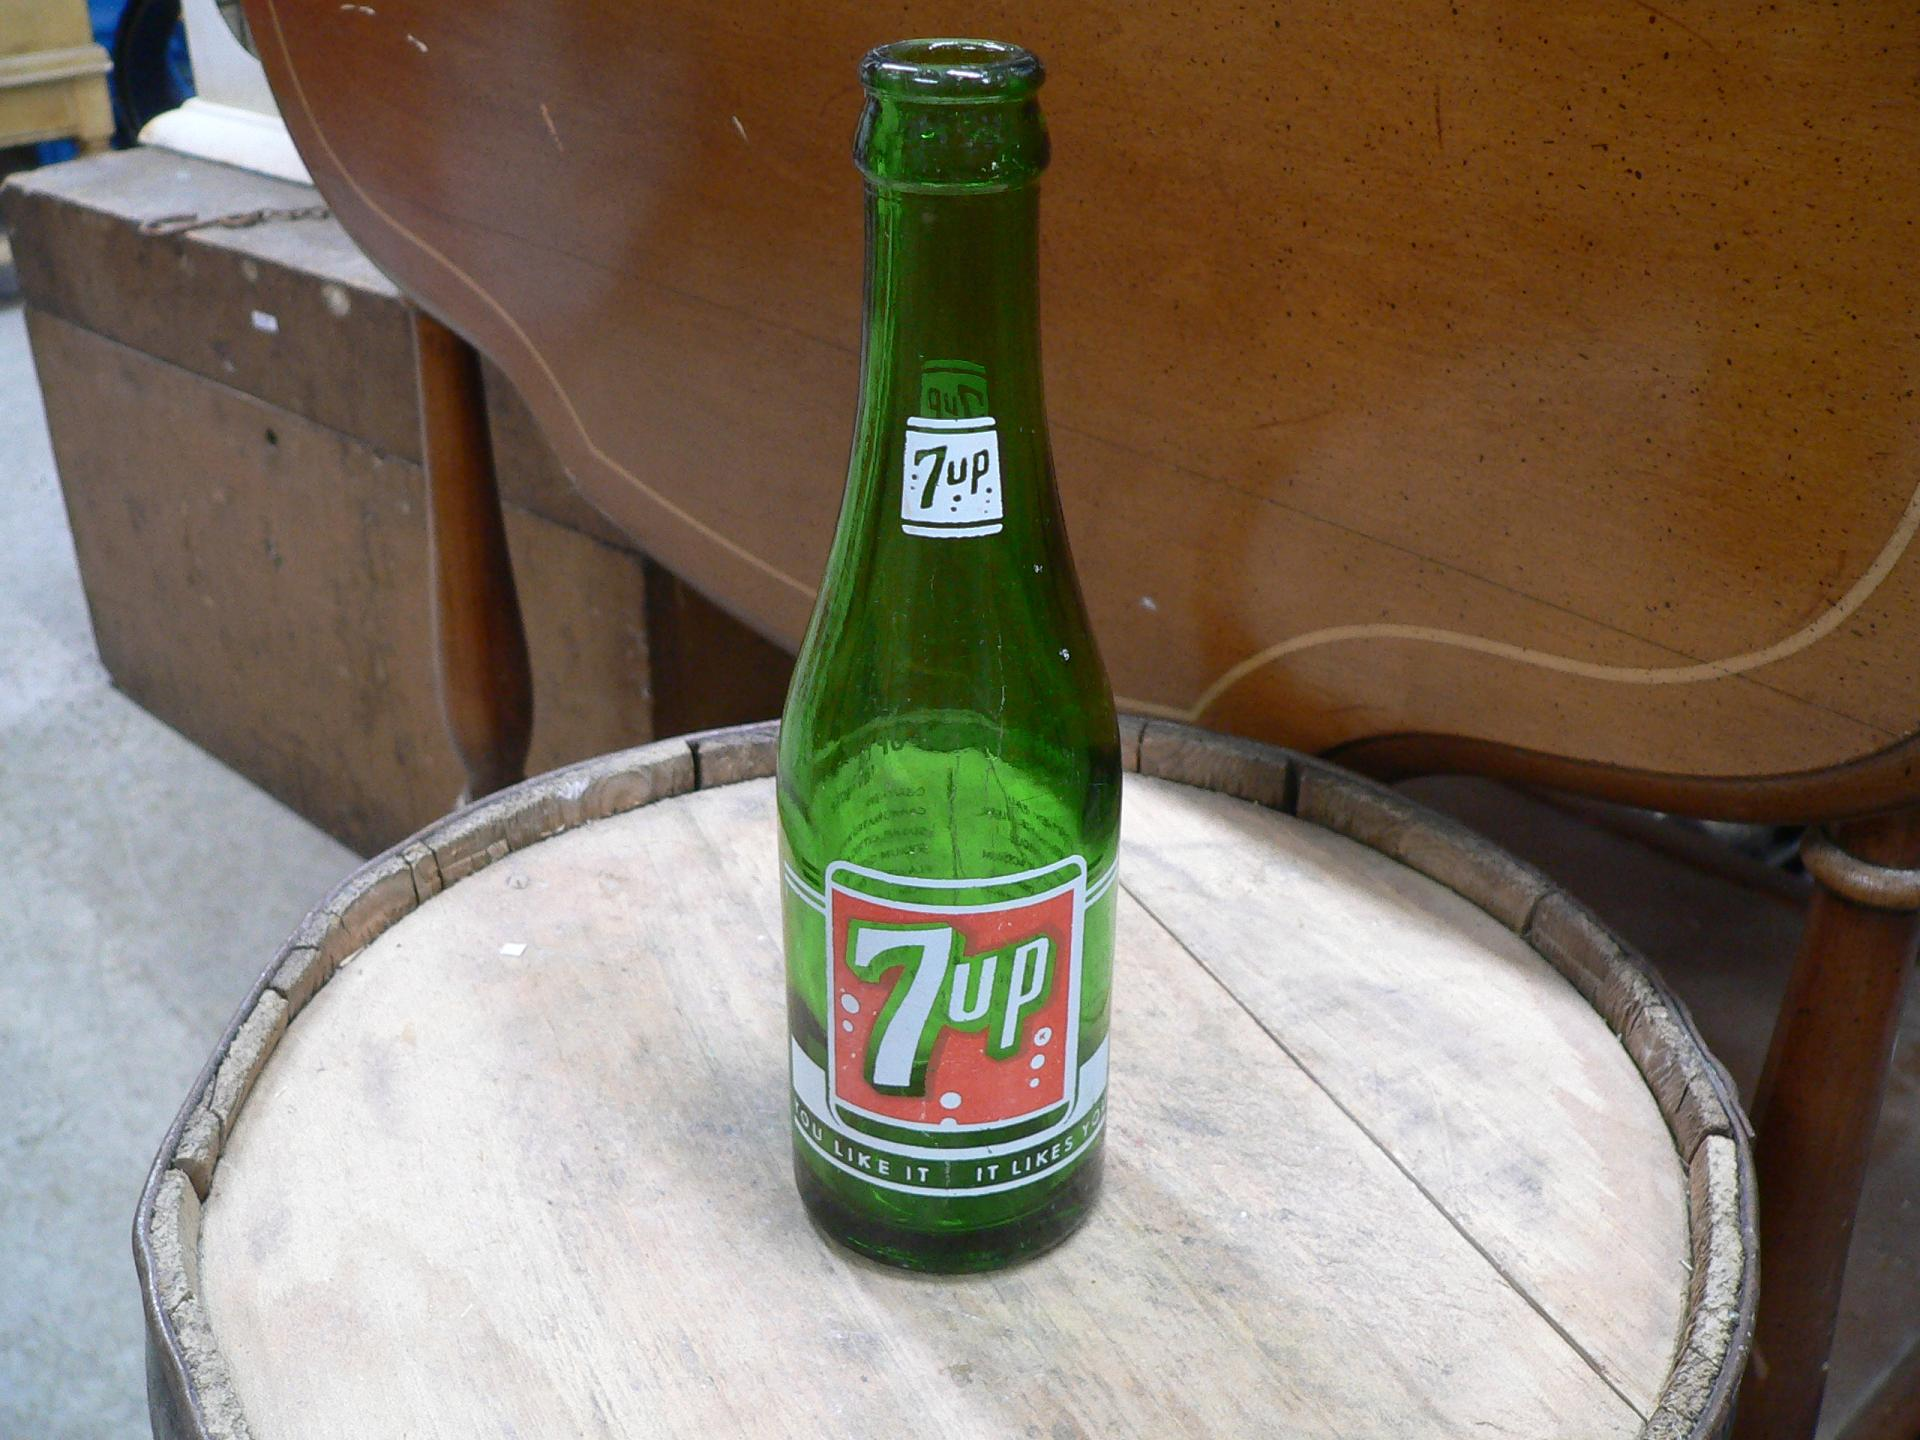 Bouteille 7up # 5214.3